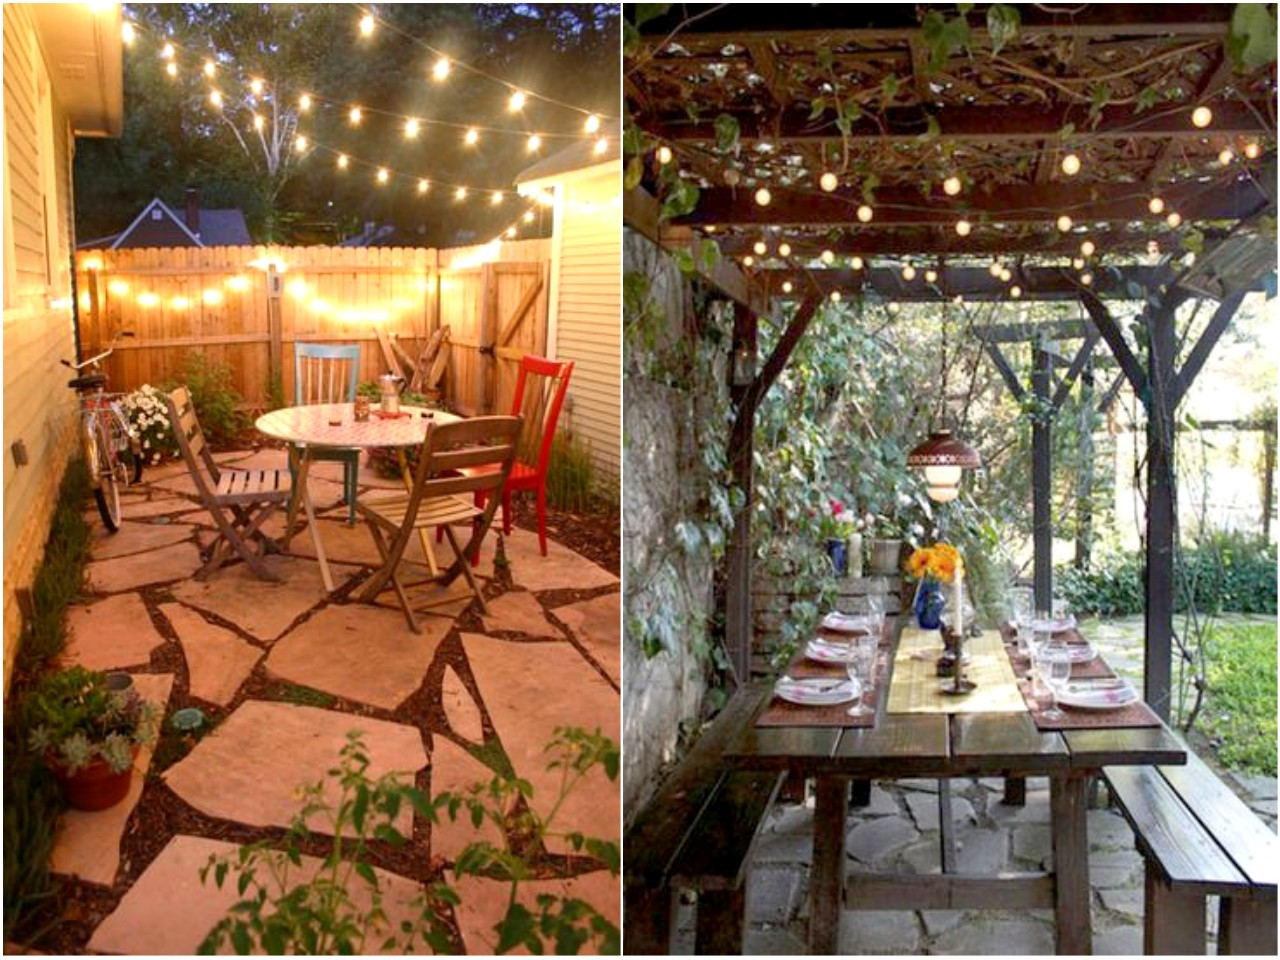 30 ideas para descubrir la decoraci n con luces de colores for Decoracion patios interiores